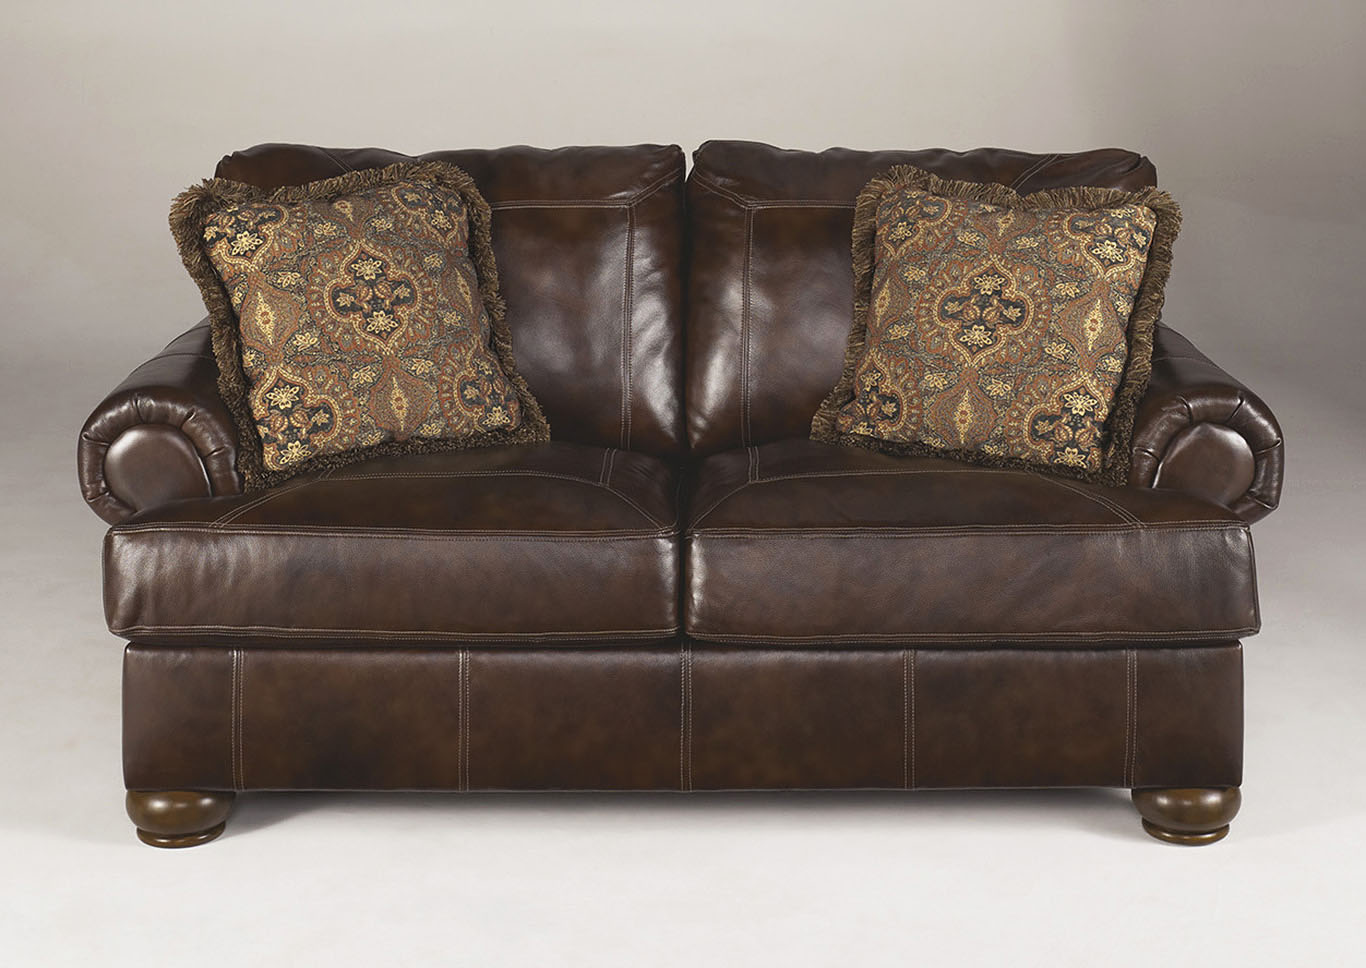 Axiom Walnut Loveseat,Signature Design By Ashley